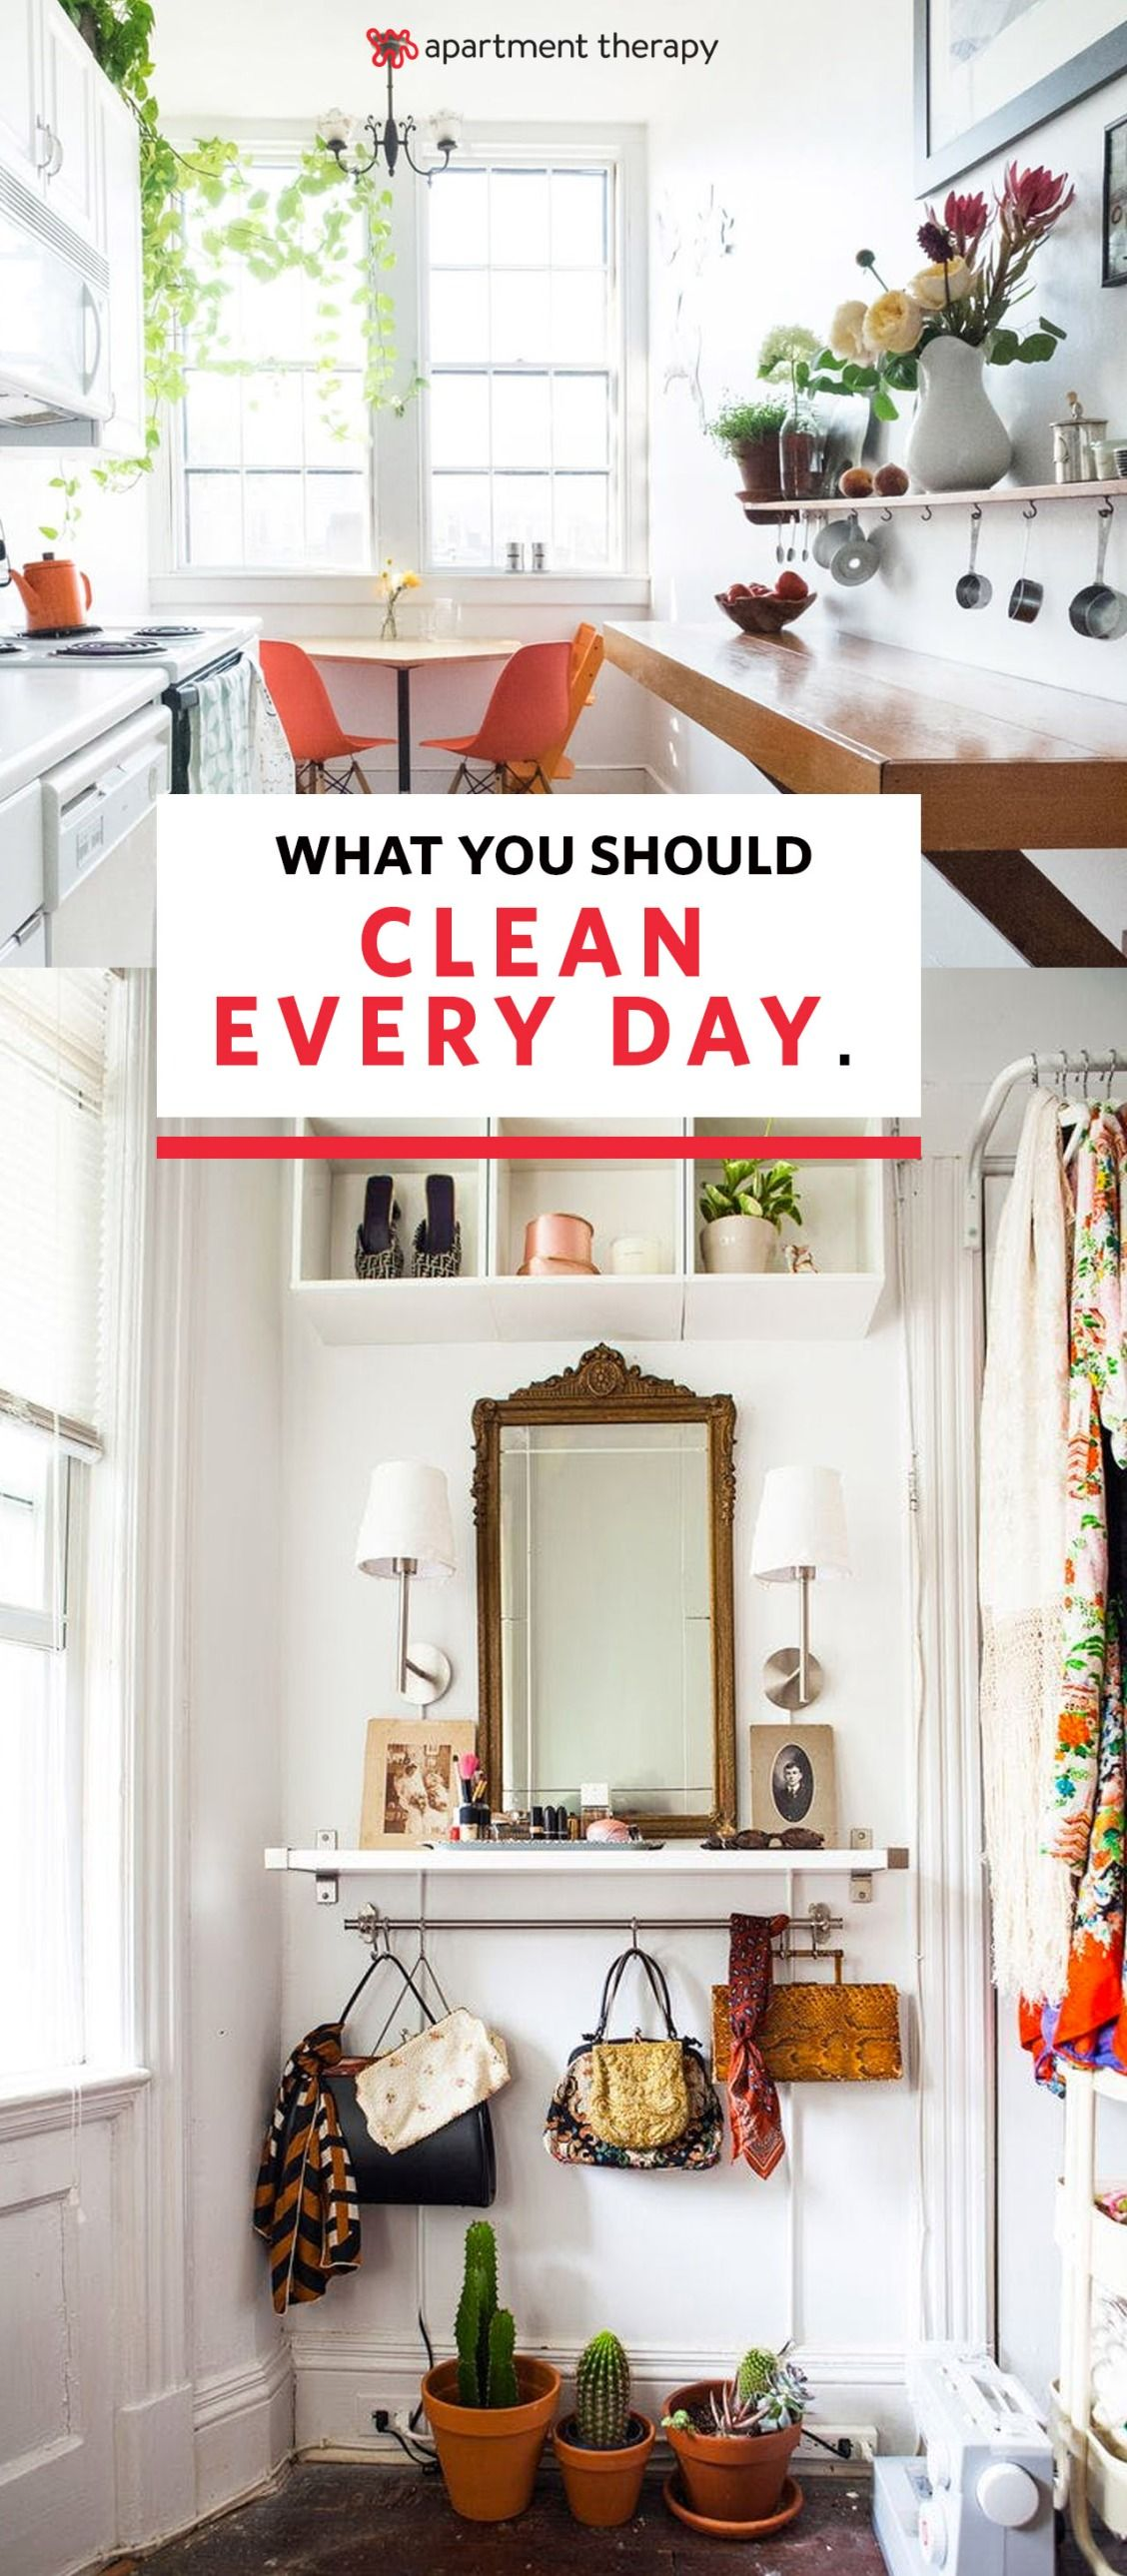 Forum on this topic: Why We Collect Clutter, and How to , why-we-collect-clutter-and-how-to/